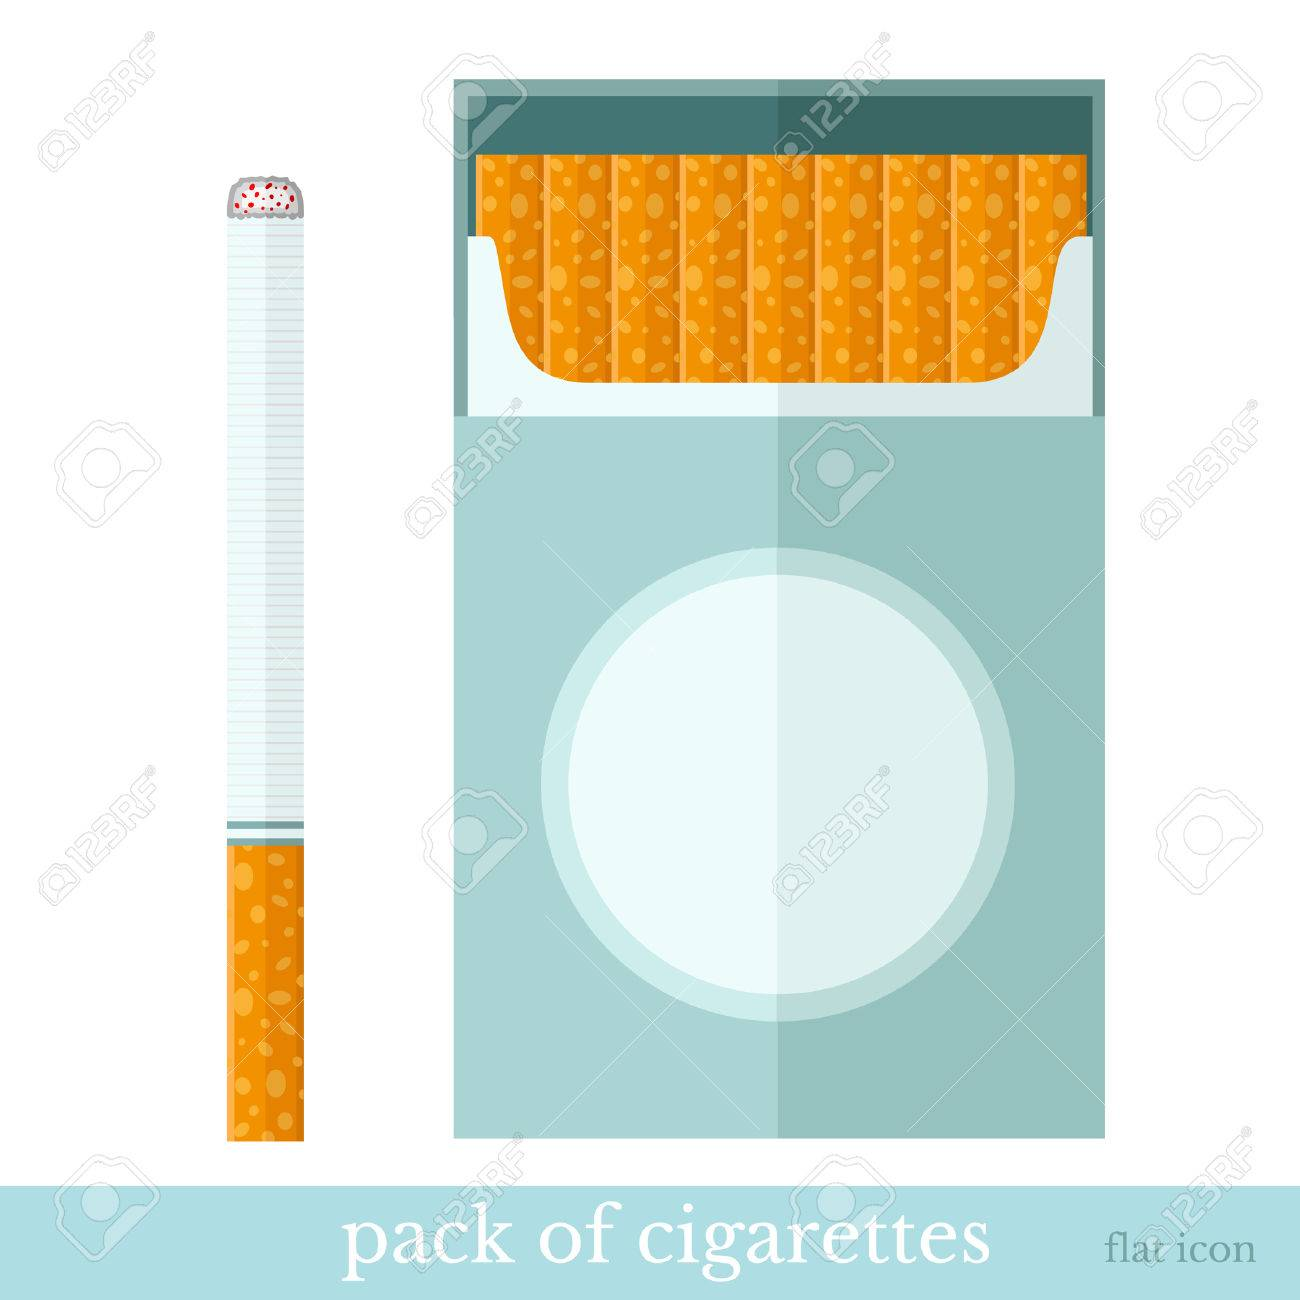 Are cigarettes Captain Black sold in UK